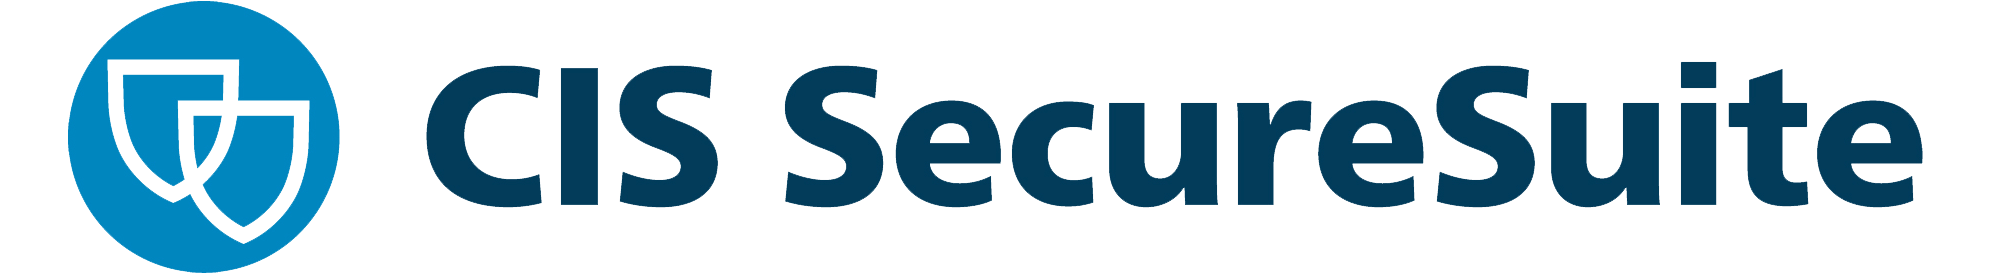 CIS secure suite logo